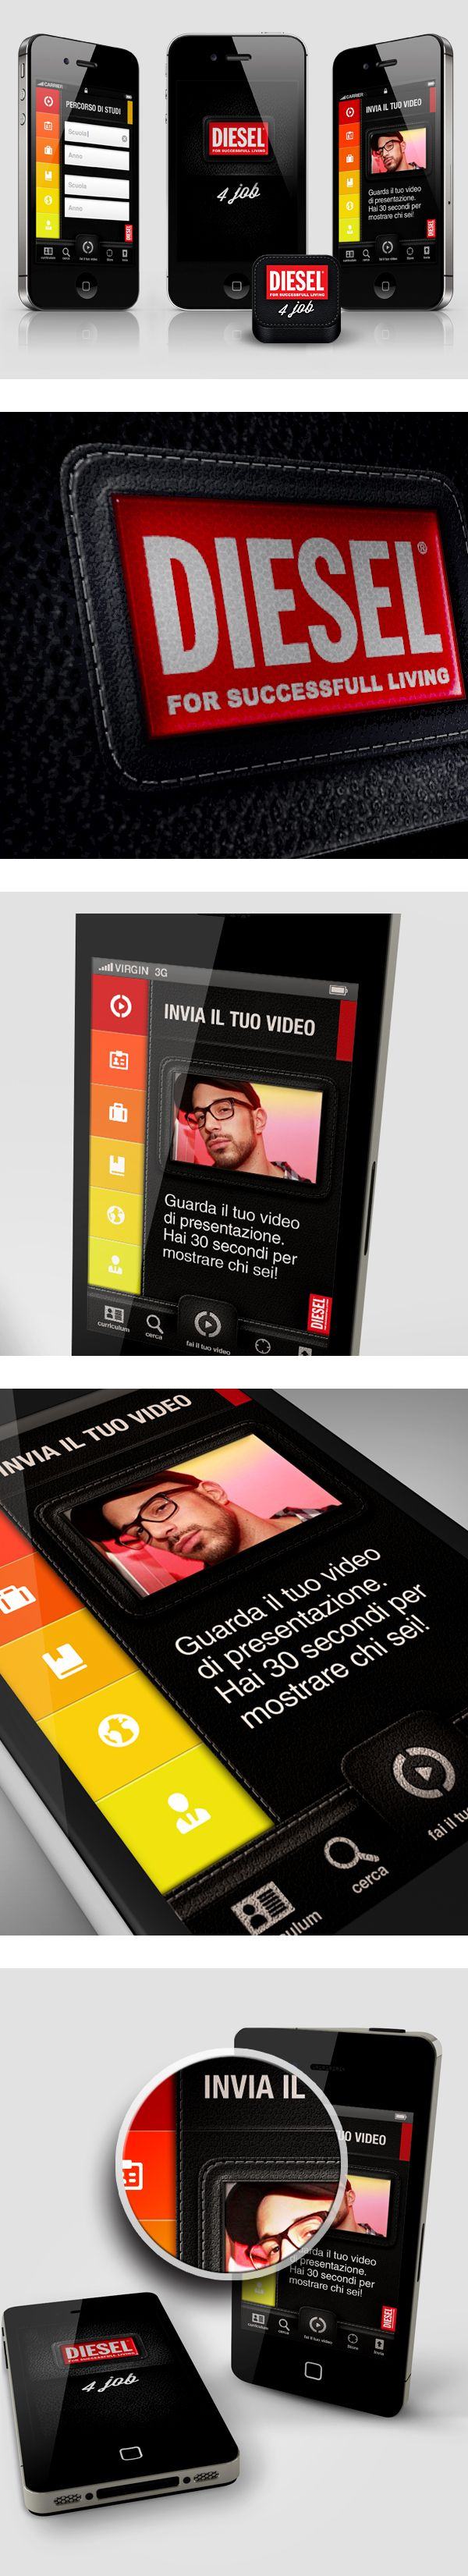 Mobile UI - App Proposal on the Behance Network